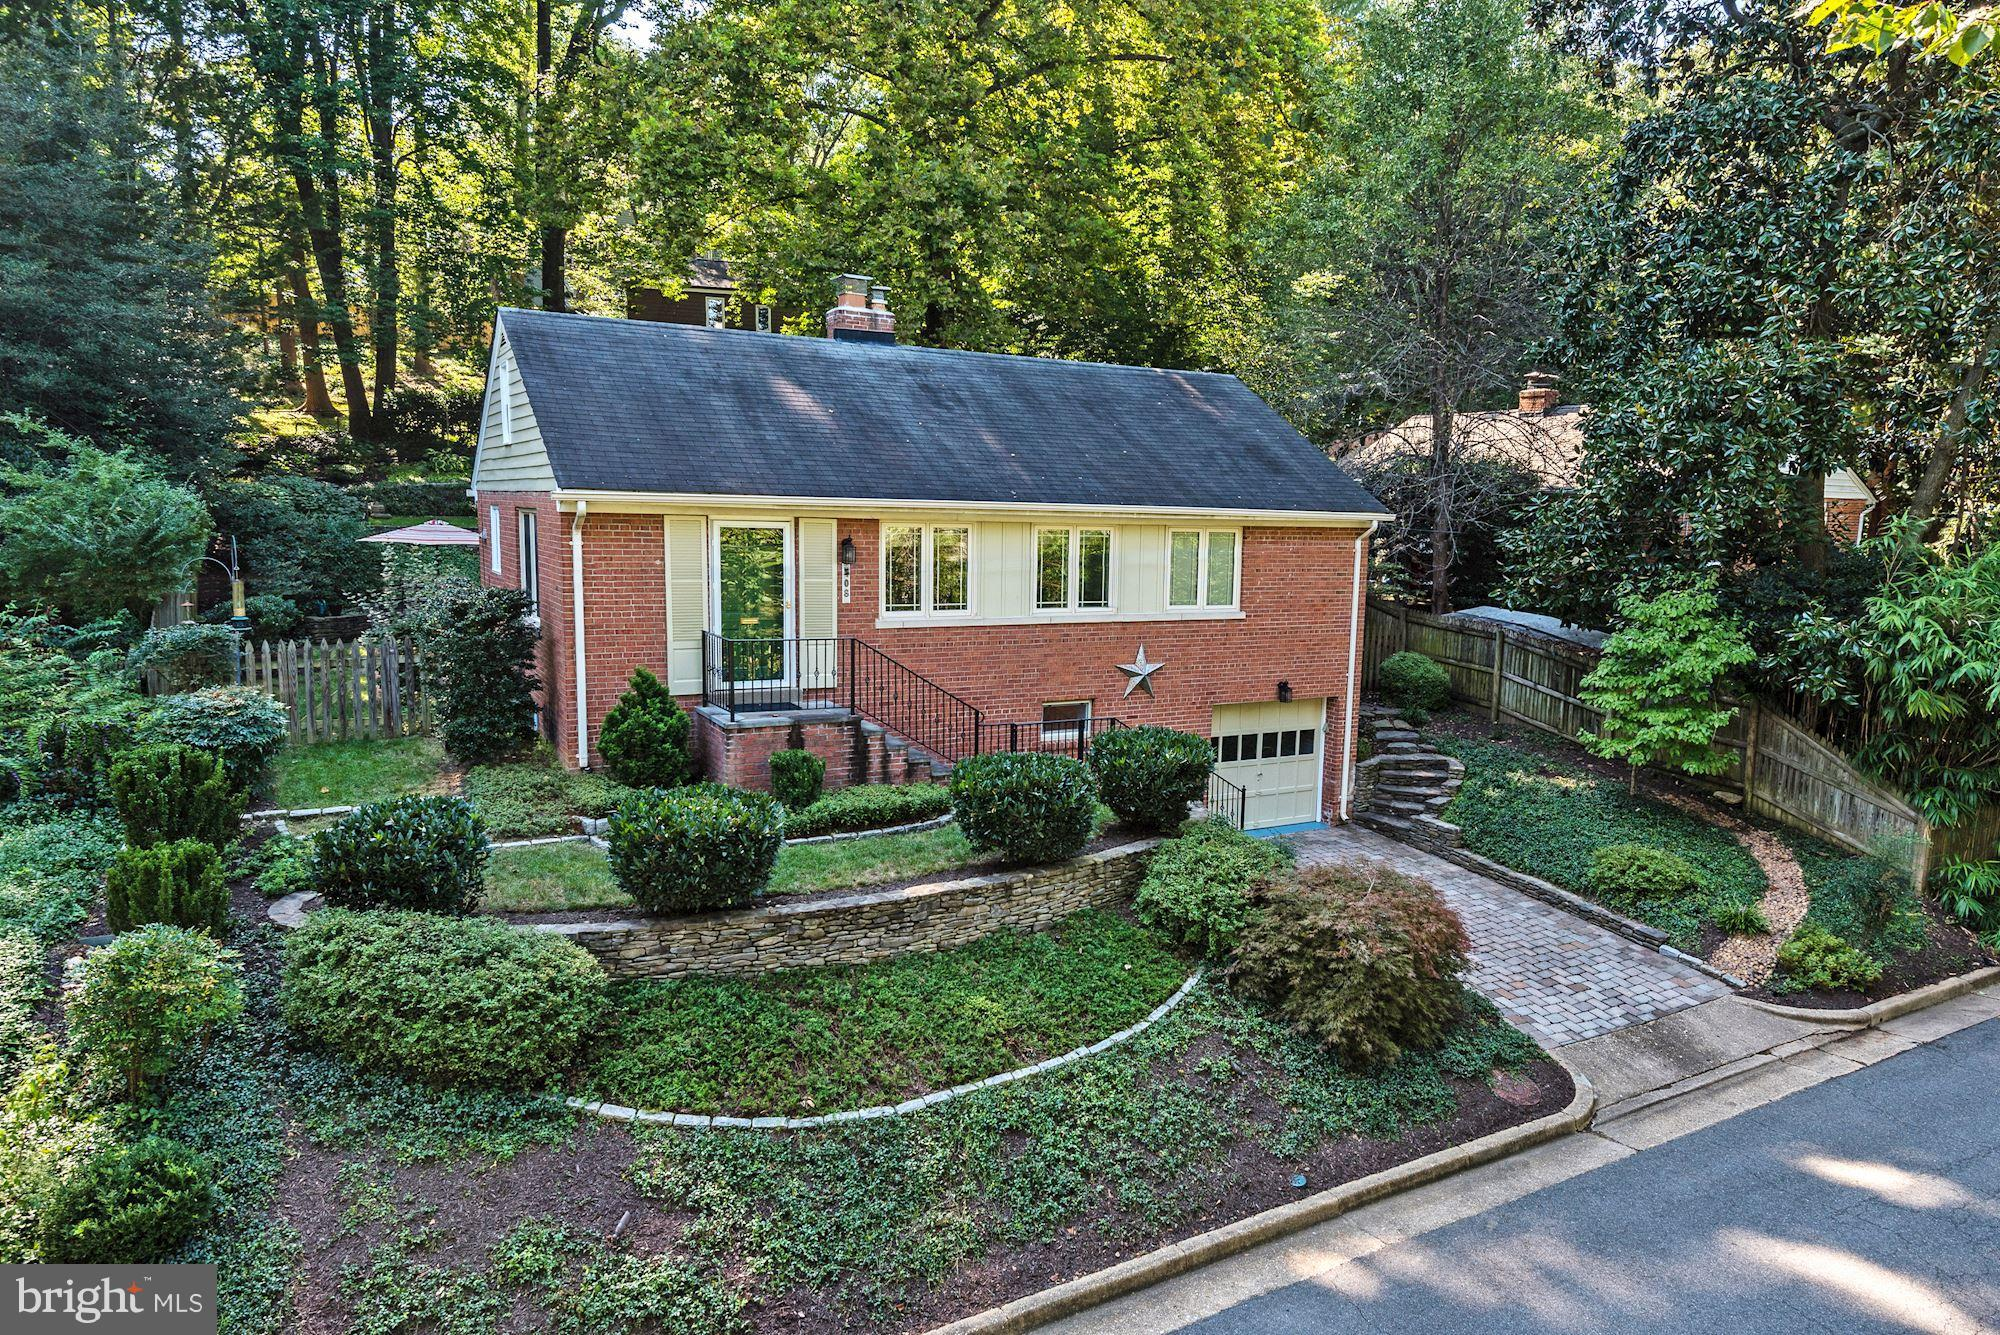 Located in the desirable Rosemont/Braddock Heights area.  Situated on a Pastoral Private  Professional Landscape Property, this meticulously renovated Brick Home features  a Gourmet Kitchen with custom cabinets, stainless steel appliances and granite counters. Lower Level Rec Room with access to the Garage. CLOSE PROXIMITY TO THE BRADDOCK ROAD AND KING STREET METROS.